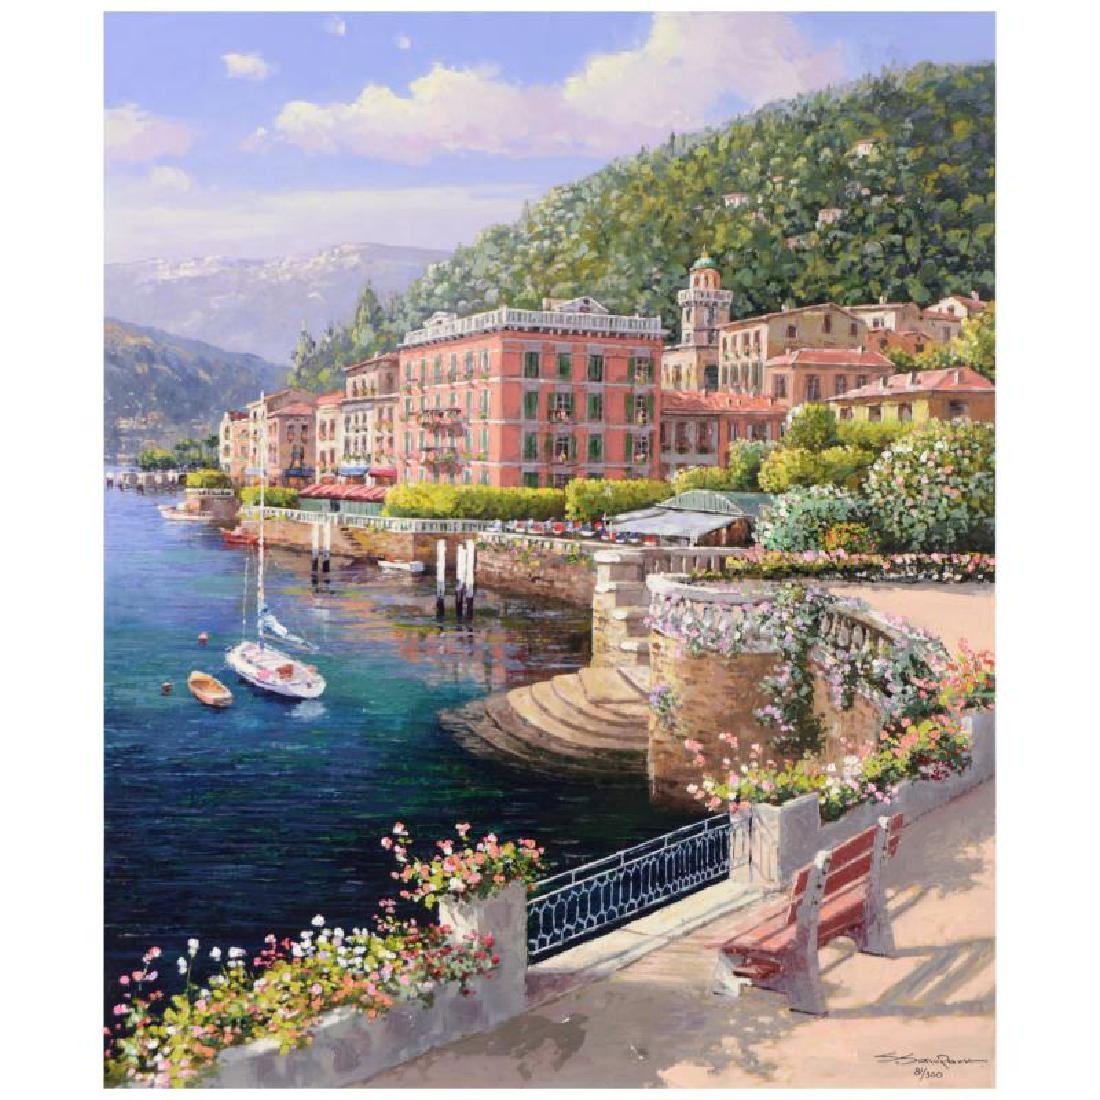 """S. Sam Park - """"Lakeside Bellagio"""" from a Sold Out Hand"""